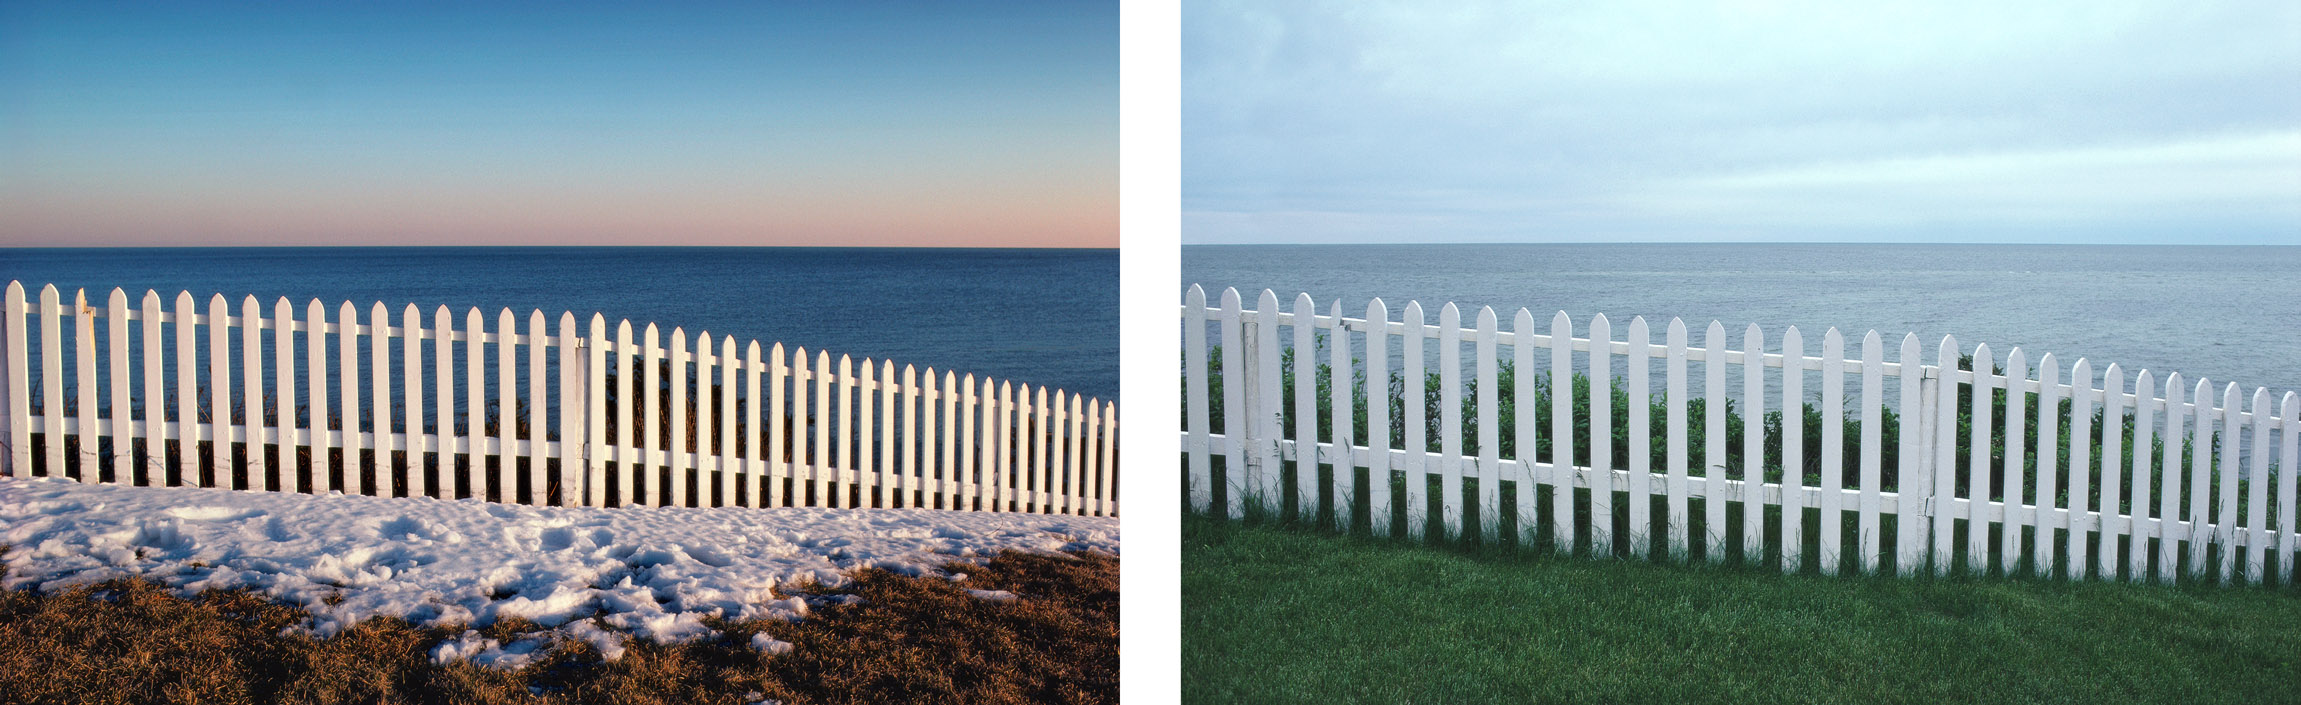 Winter and Summer   Cape Cod Fence